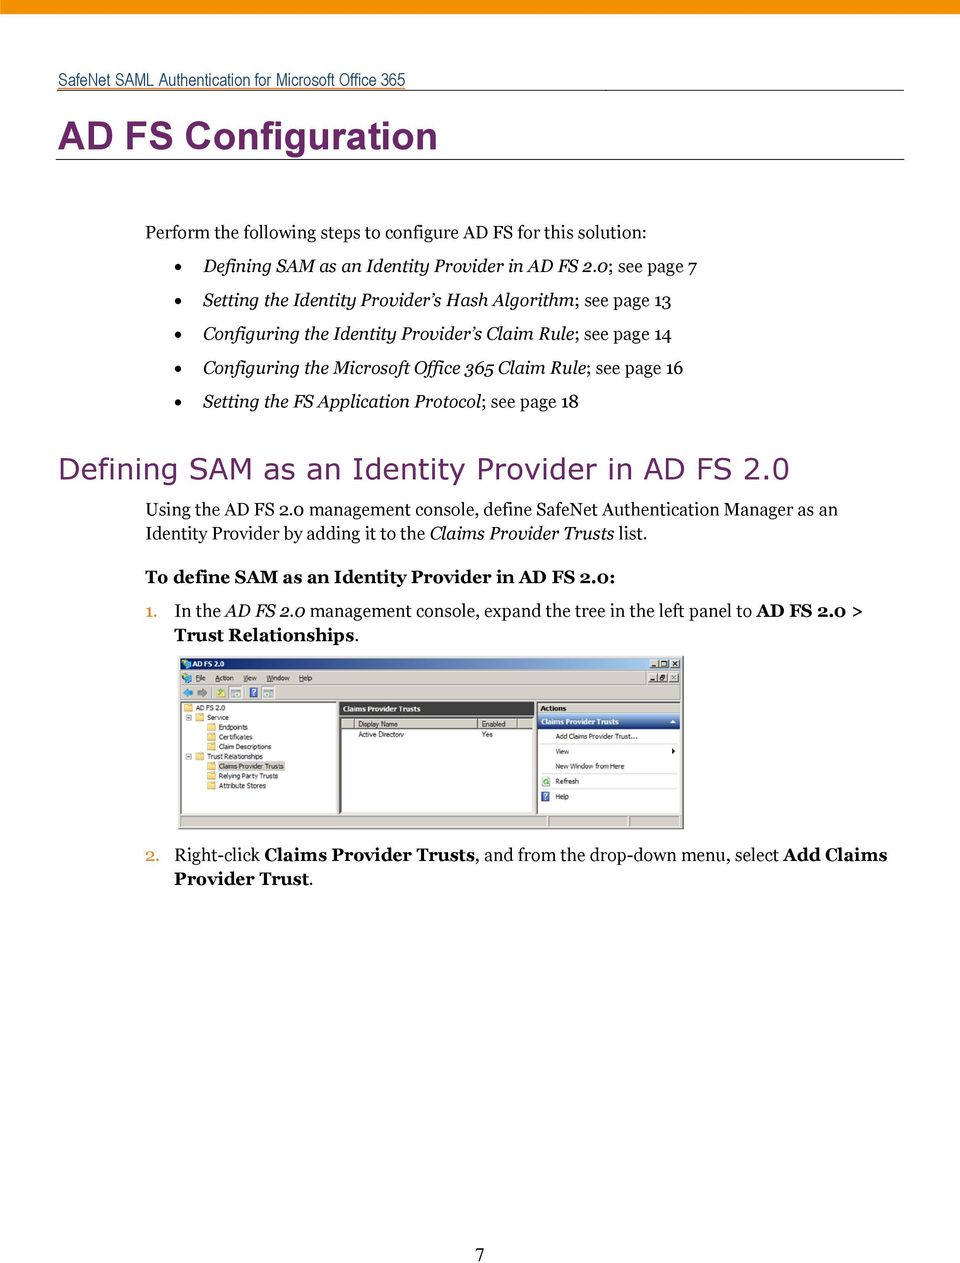 Setting the FS Application Protocol; see page 18 Defining SAM as an Identity Provider in AD FS 2.0 Using the AD FS 2.